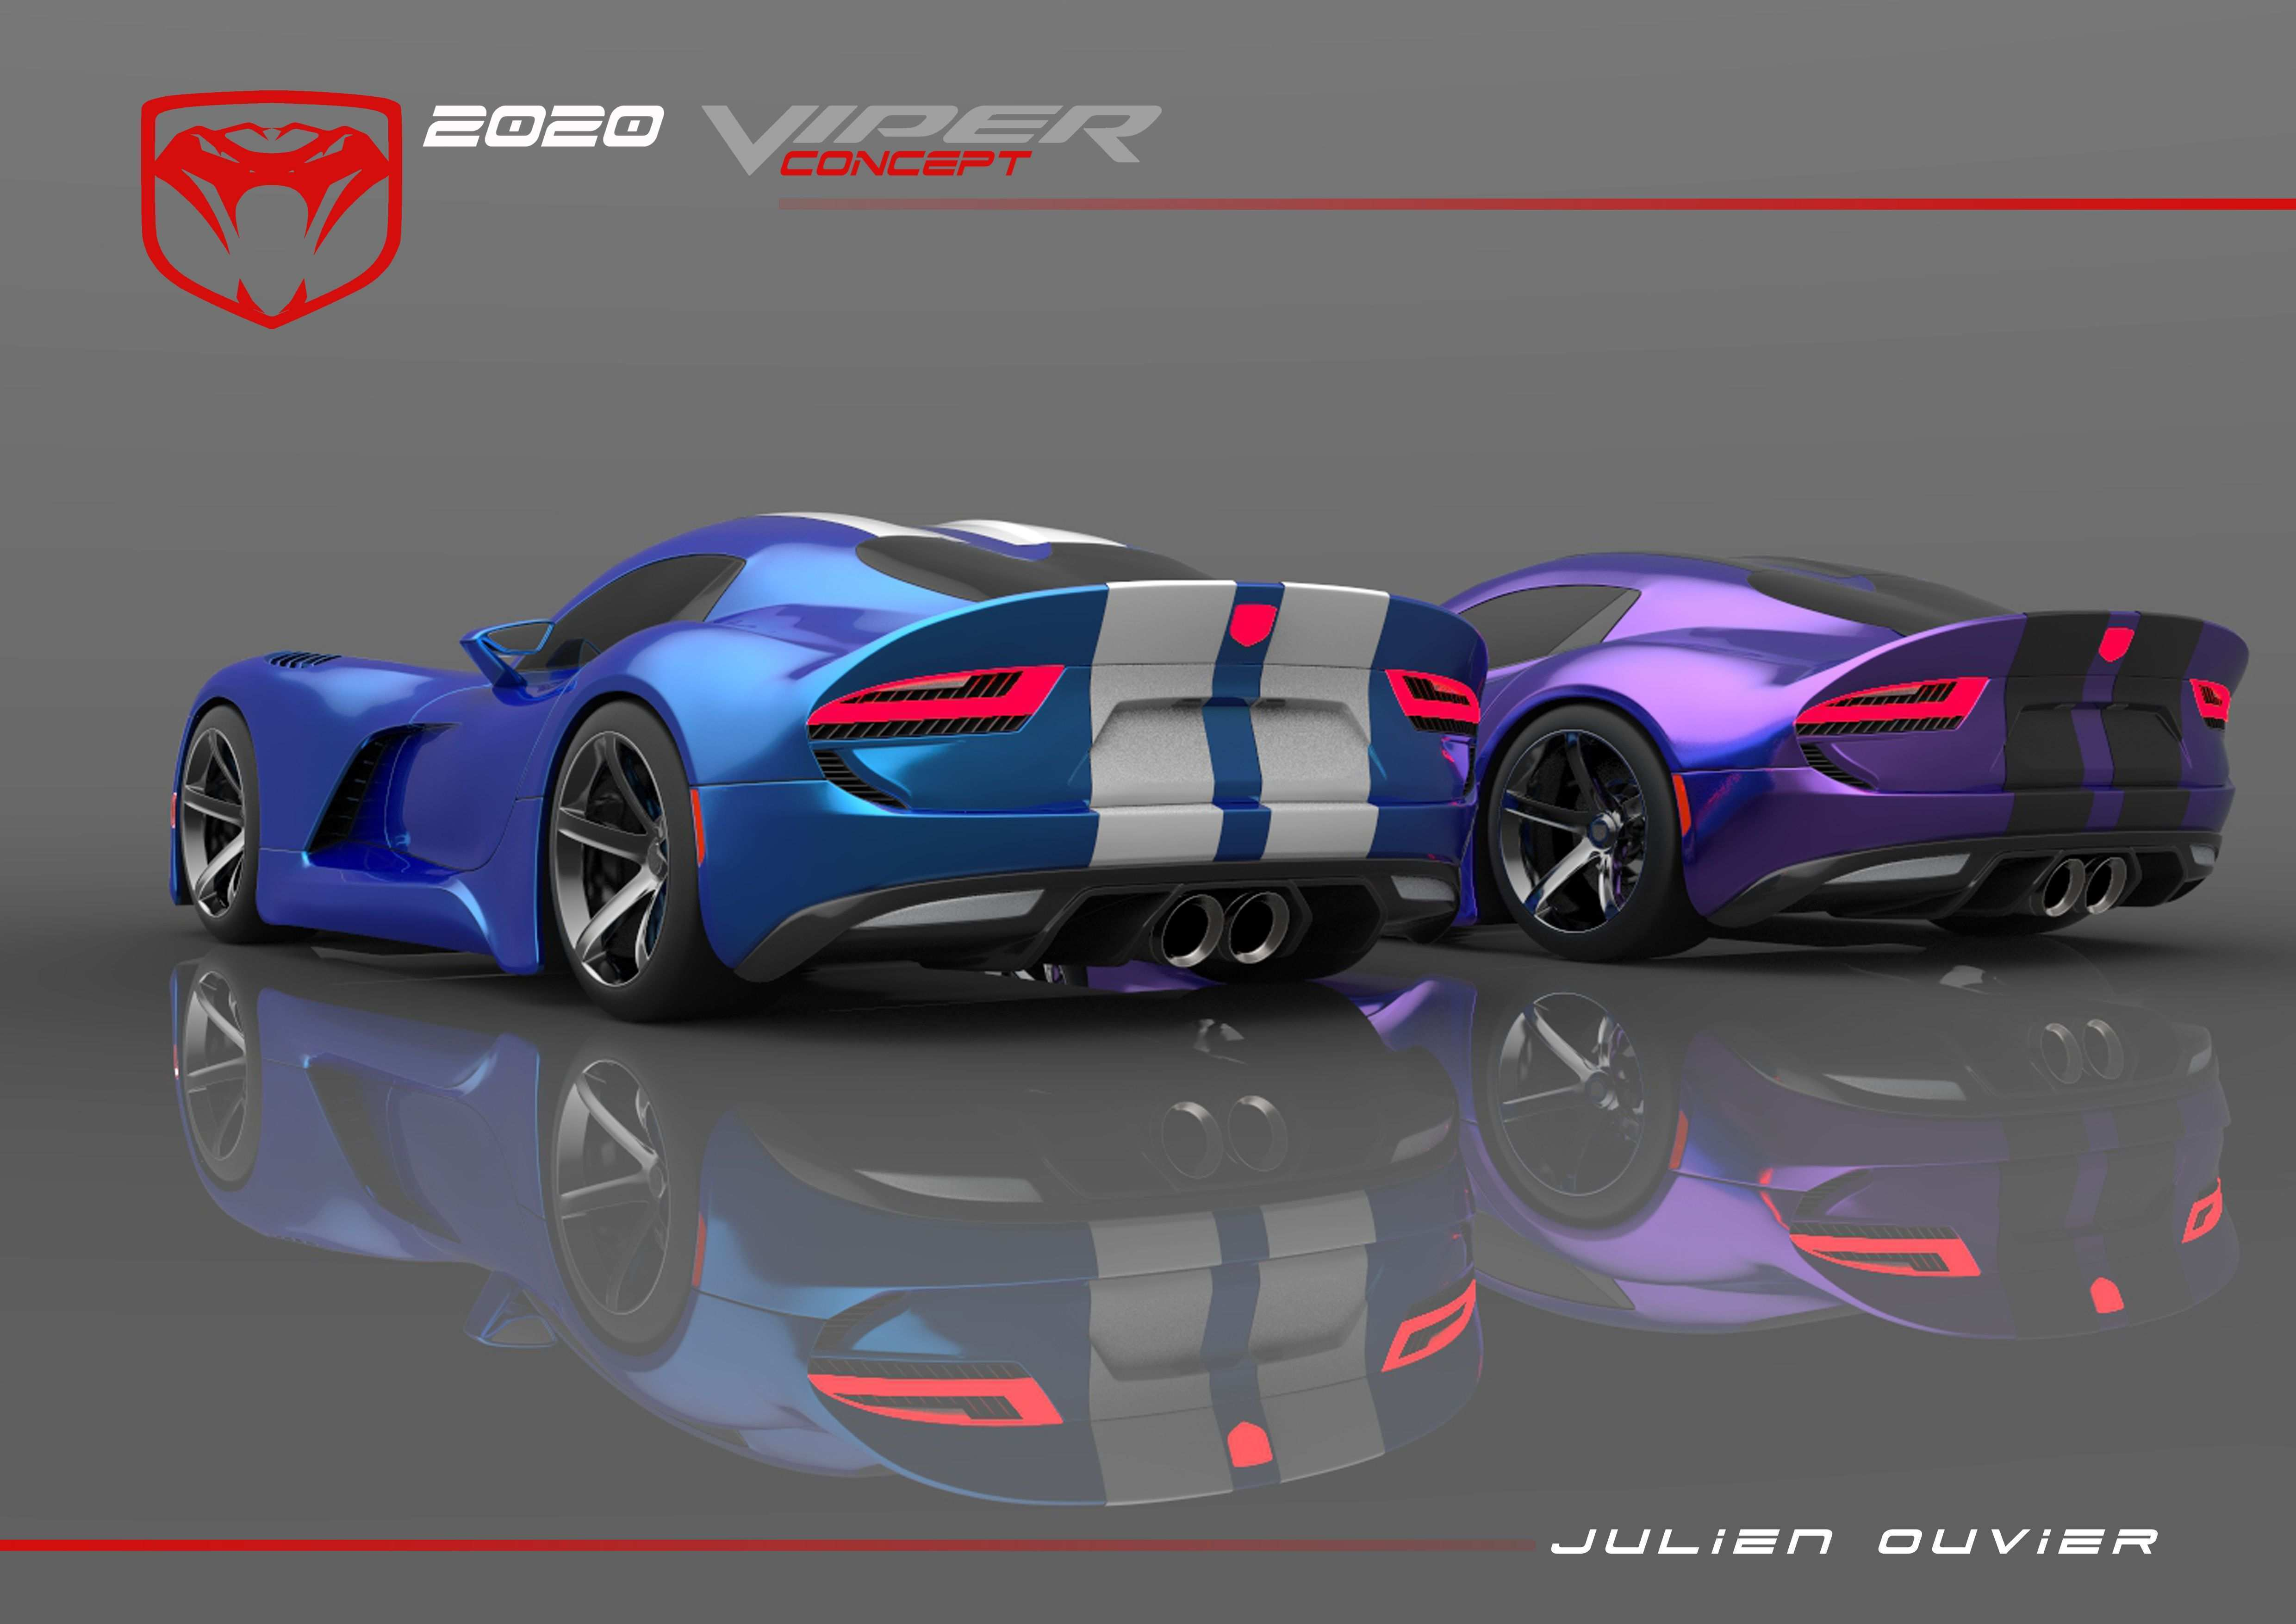 37 Great Dodge Viper Concept 2020 Speed Test by Dodge Viper Concept 2020